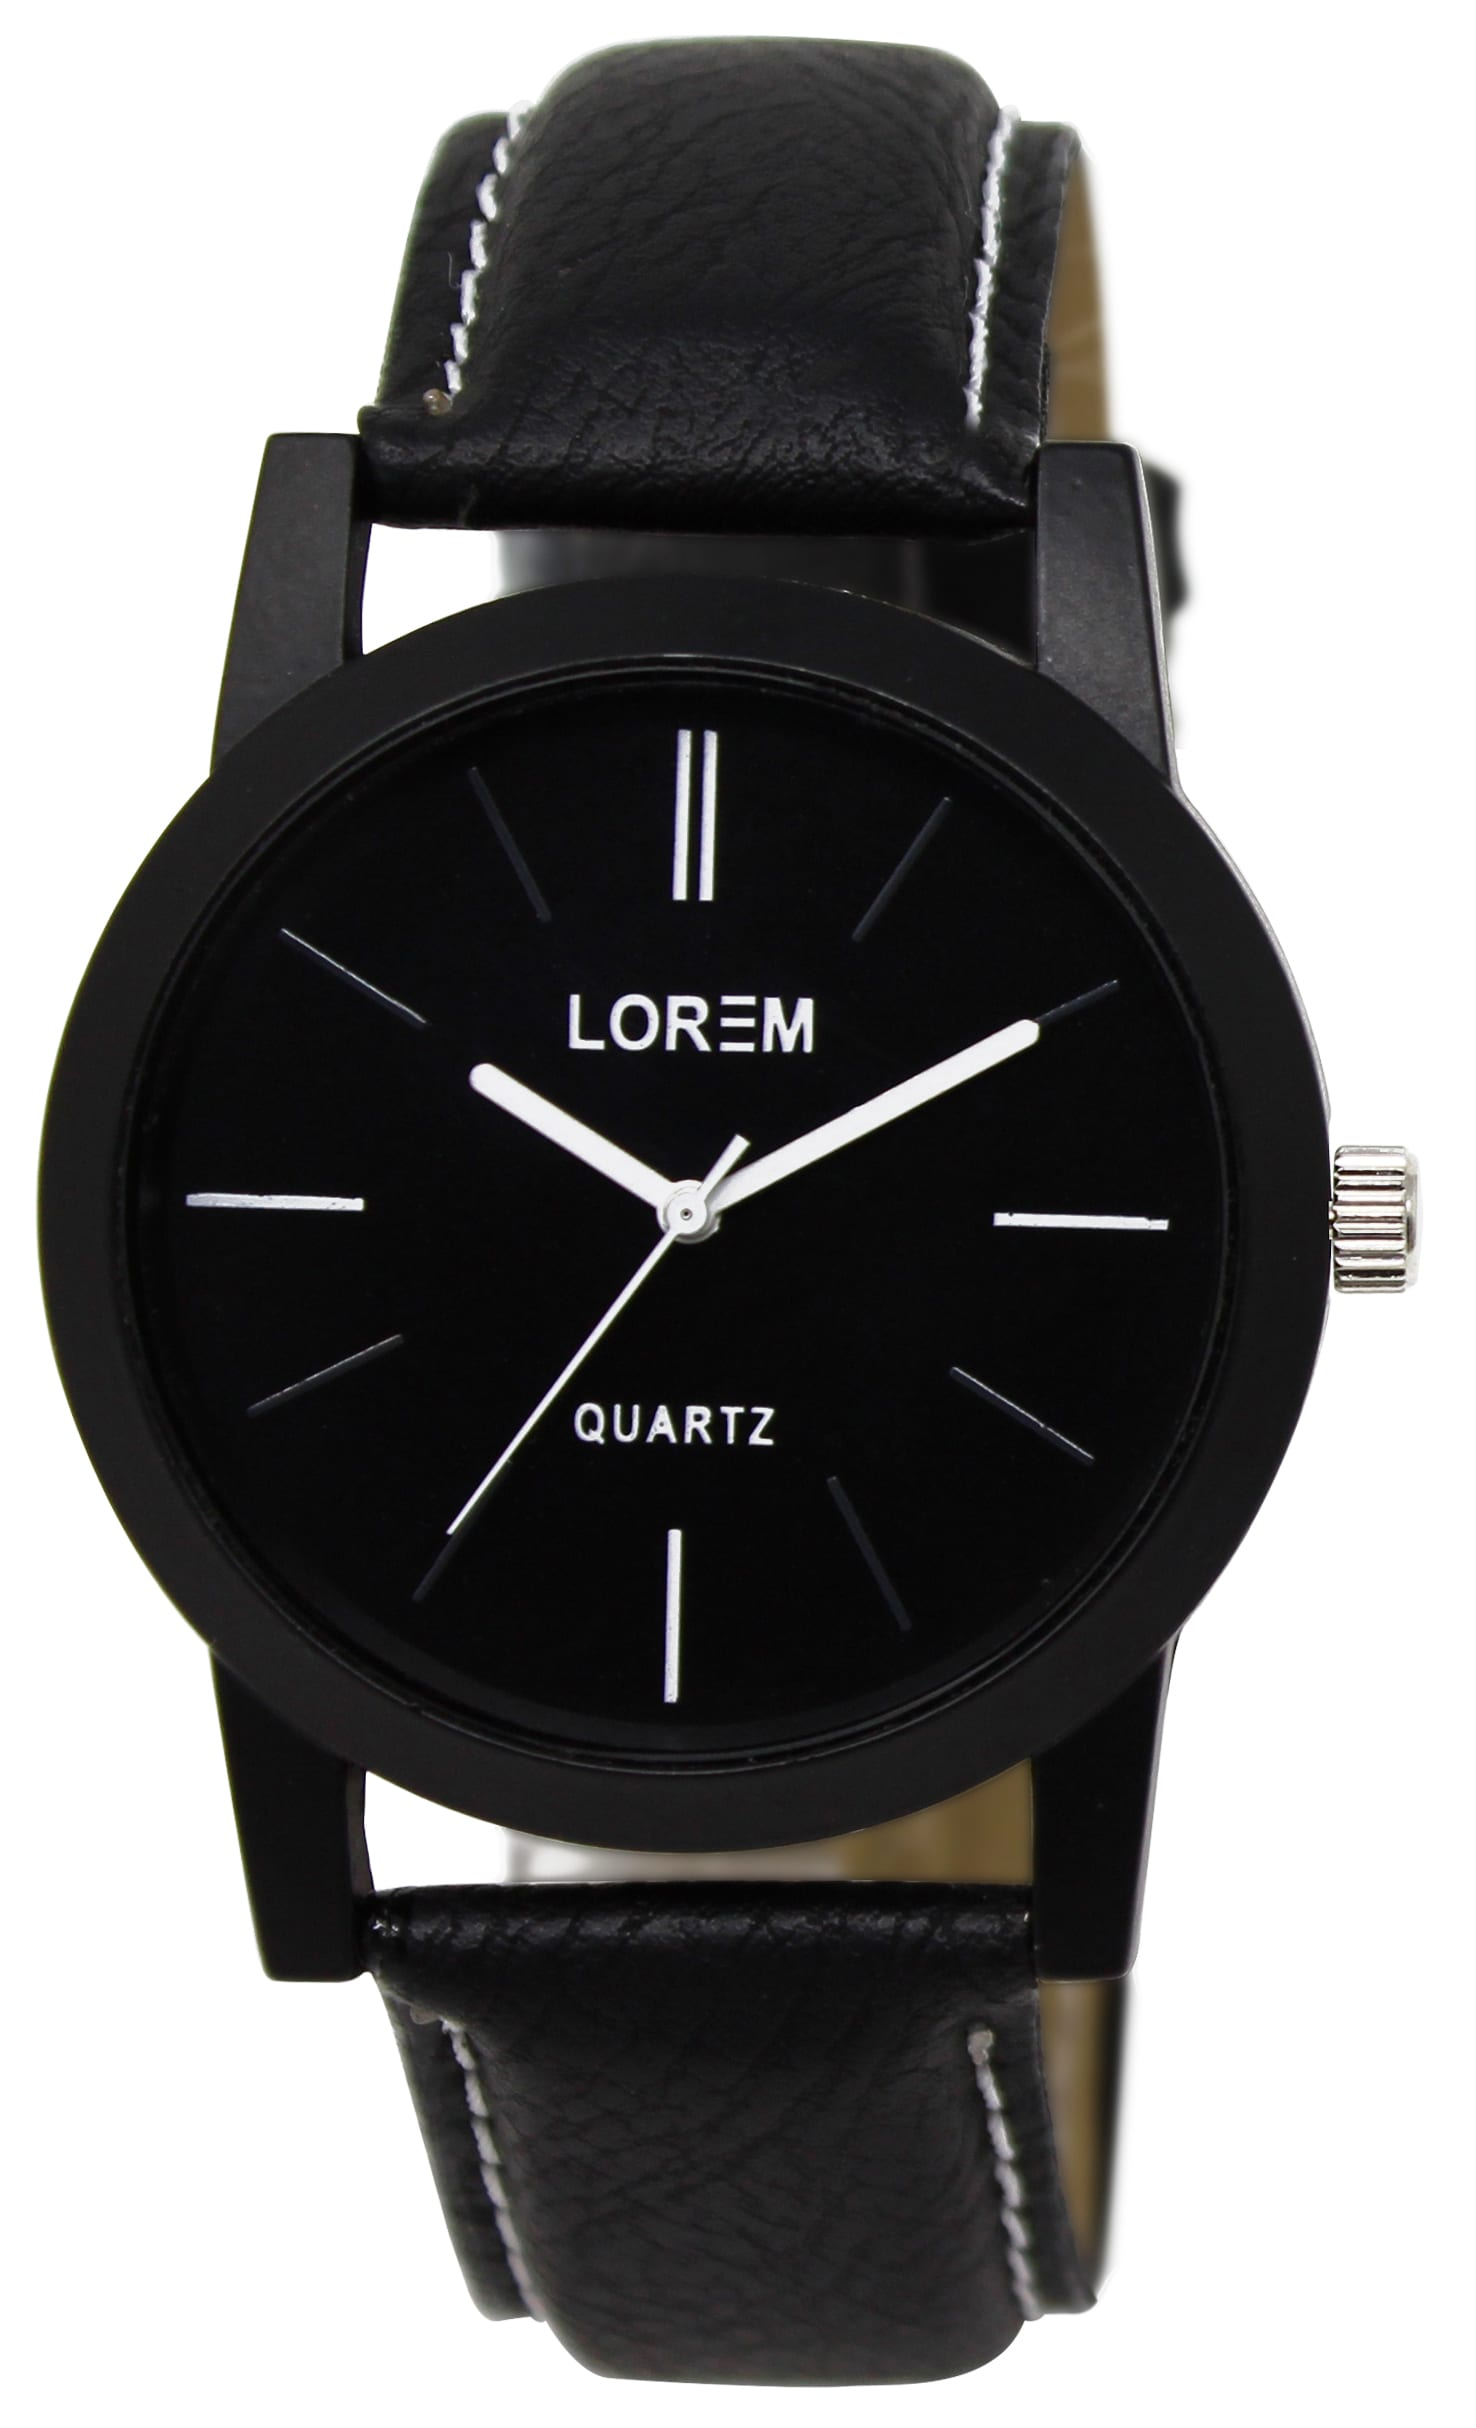 New Arrival Analogue Black Dial Men's Wrist Watch